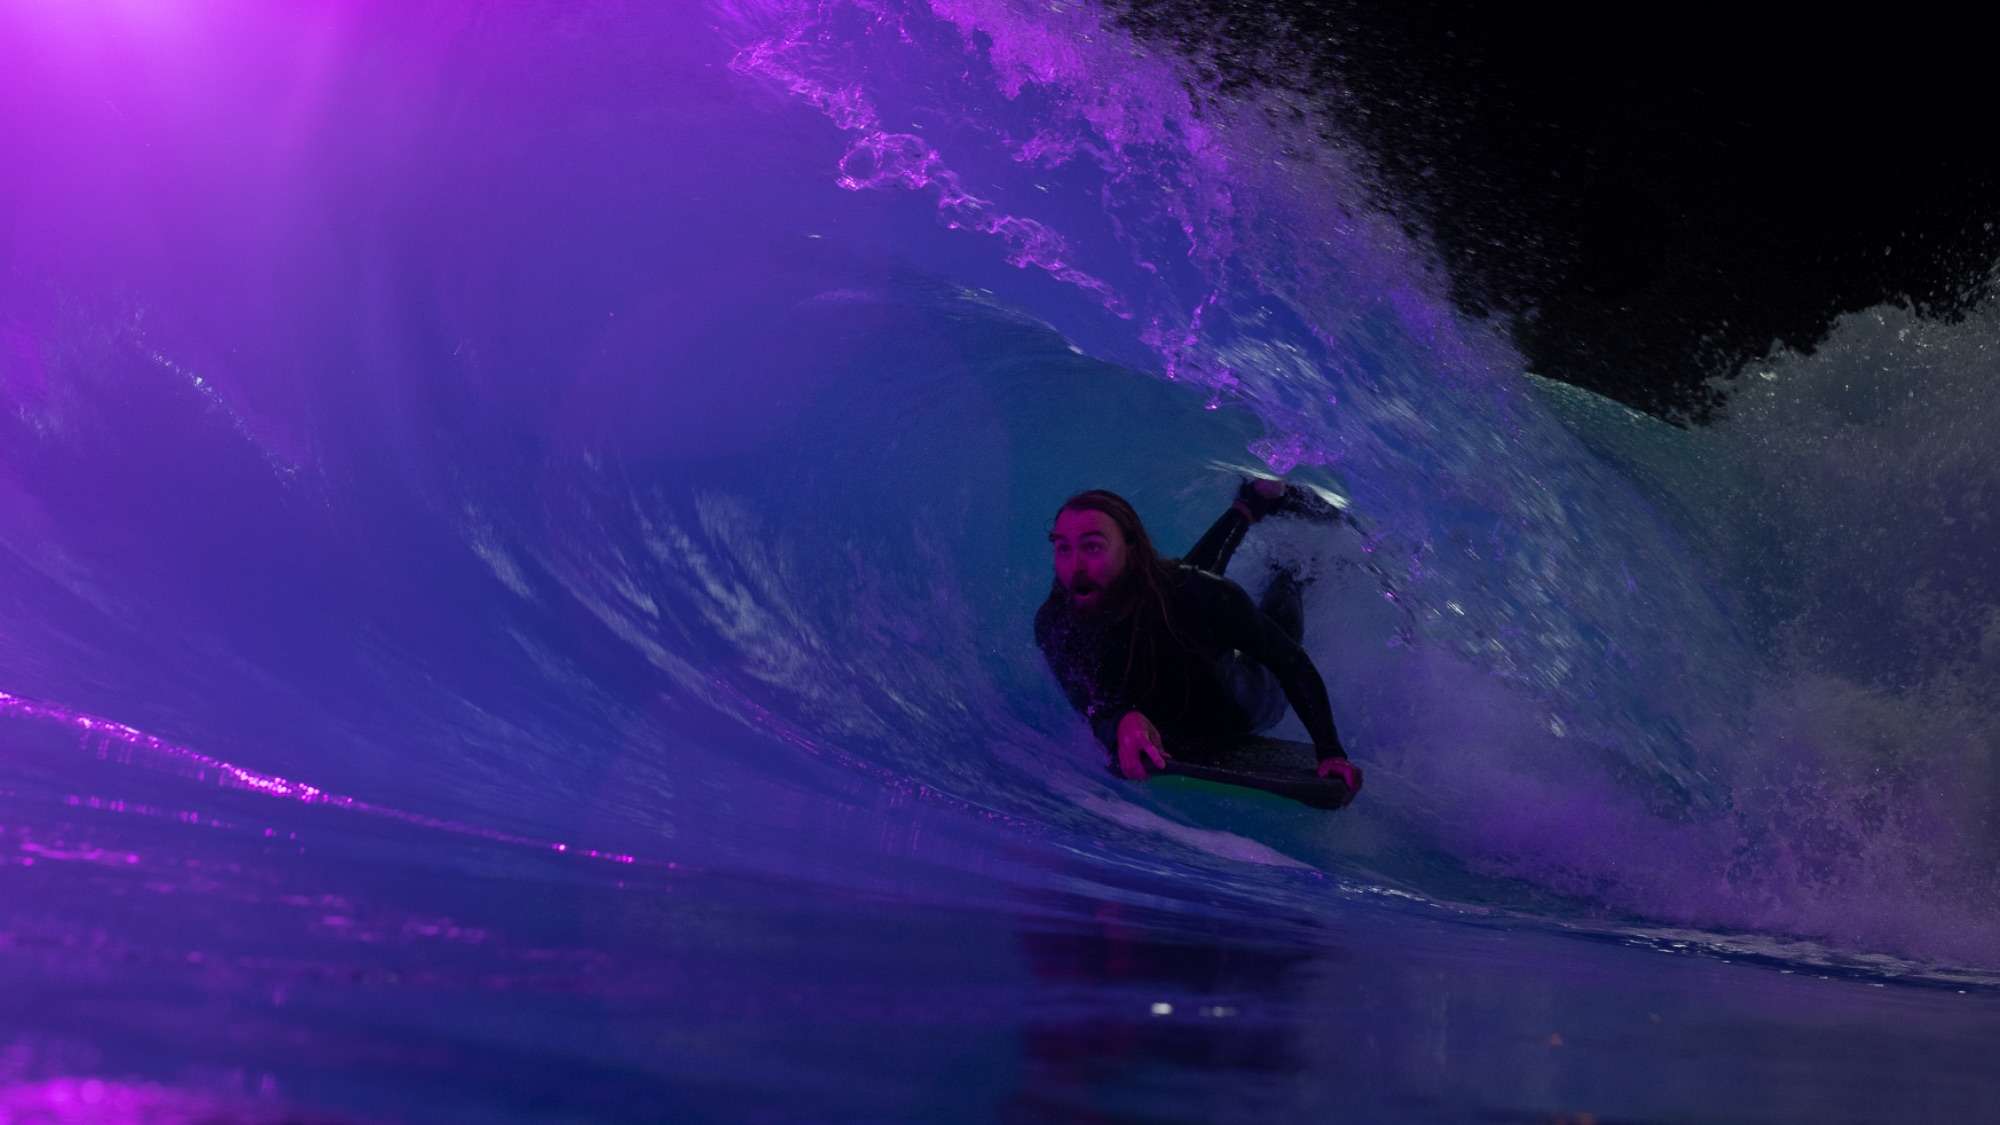 wave pool night surf photography